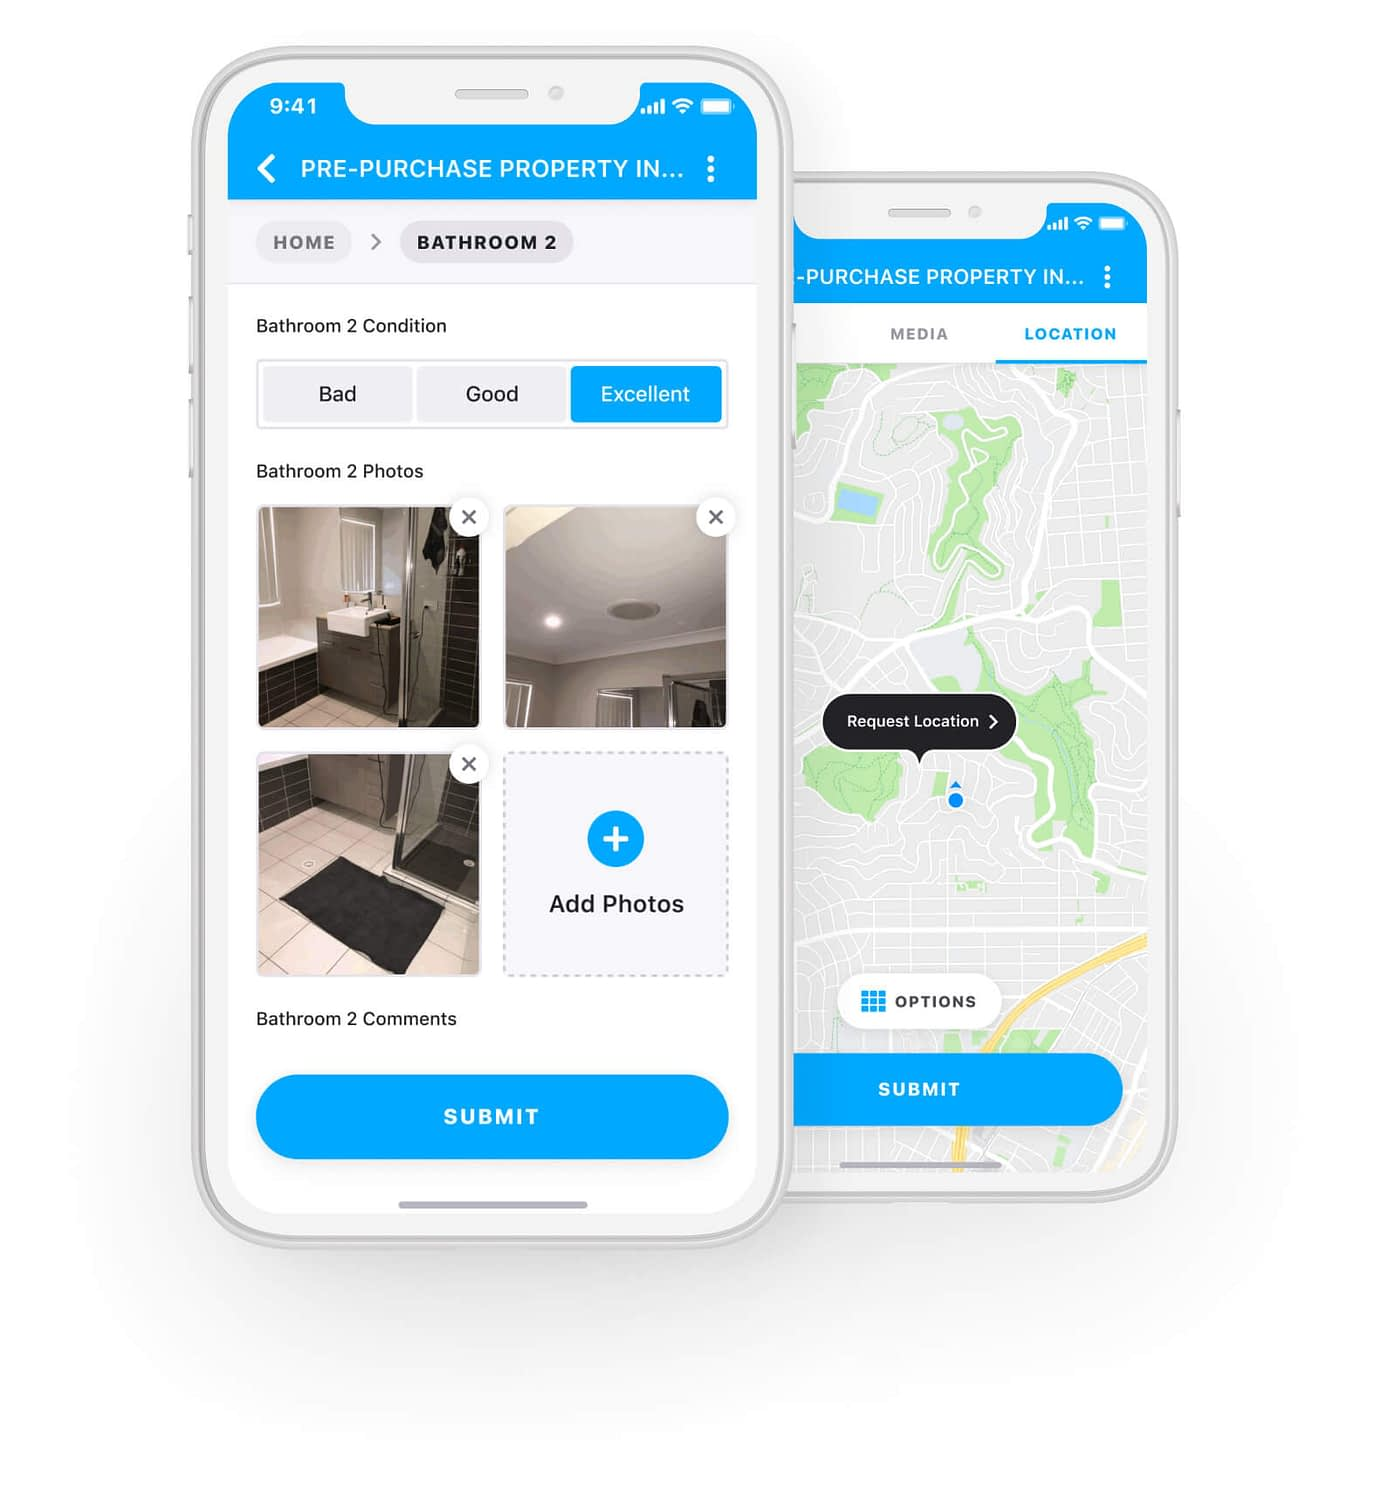 Pre Purchase Property Inspection App - Section 1